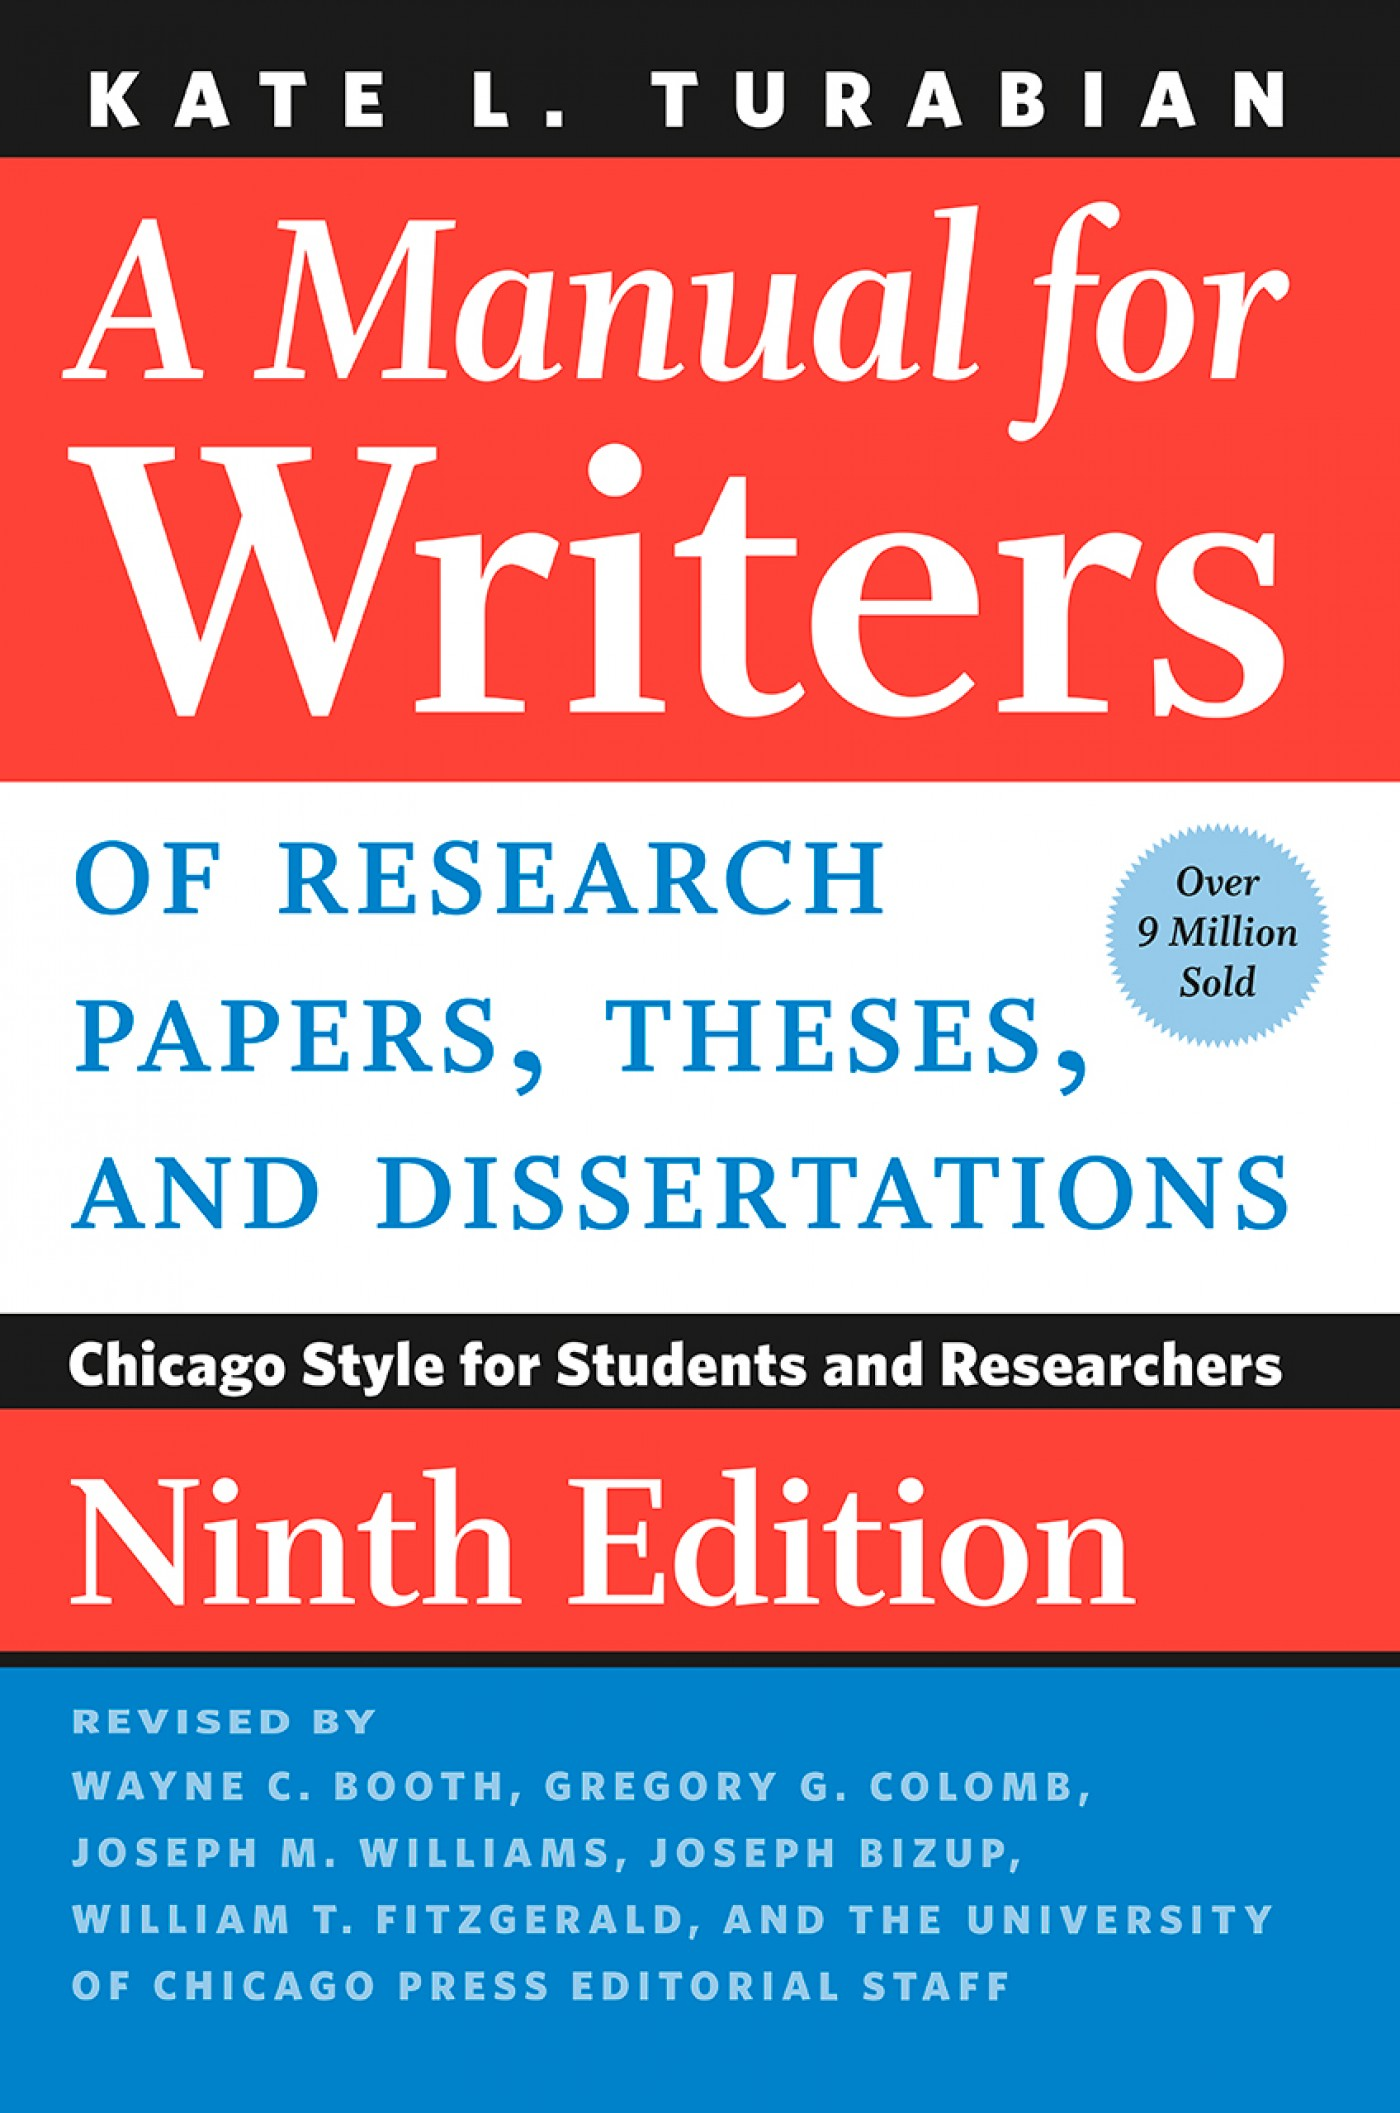 001 Manual For Writers Of Research Papers Theses And Dissertations Paper Magnificent A Amazon 9th Edition Pdf 8th 13 1400